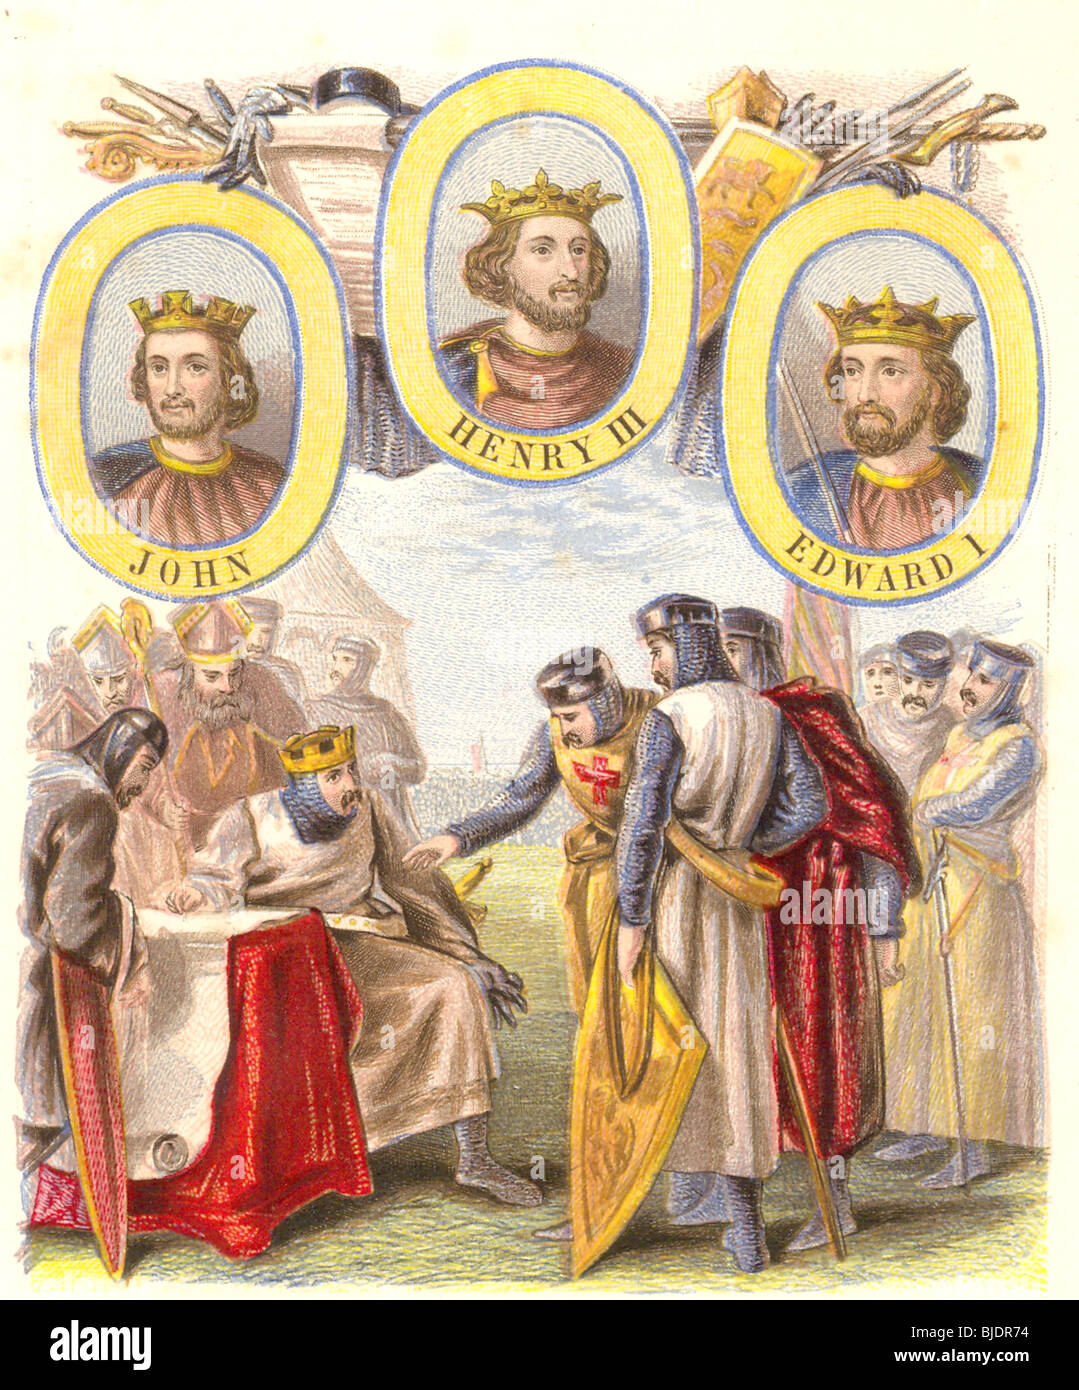 House Of Plantagenet In England on all kings of england, statute of king john of england, danes of england, romantic poets of england, norman kings of england, stuarts of england, elizabeth woodville of england, tudors of england,